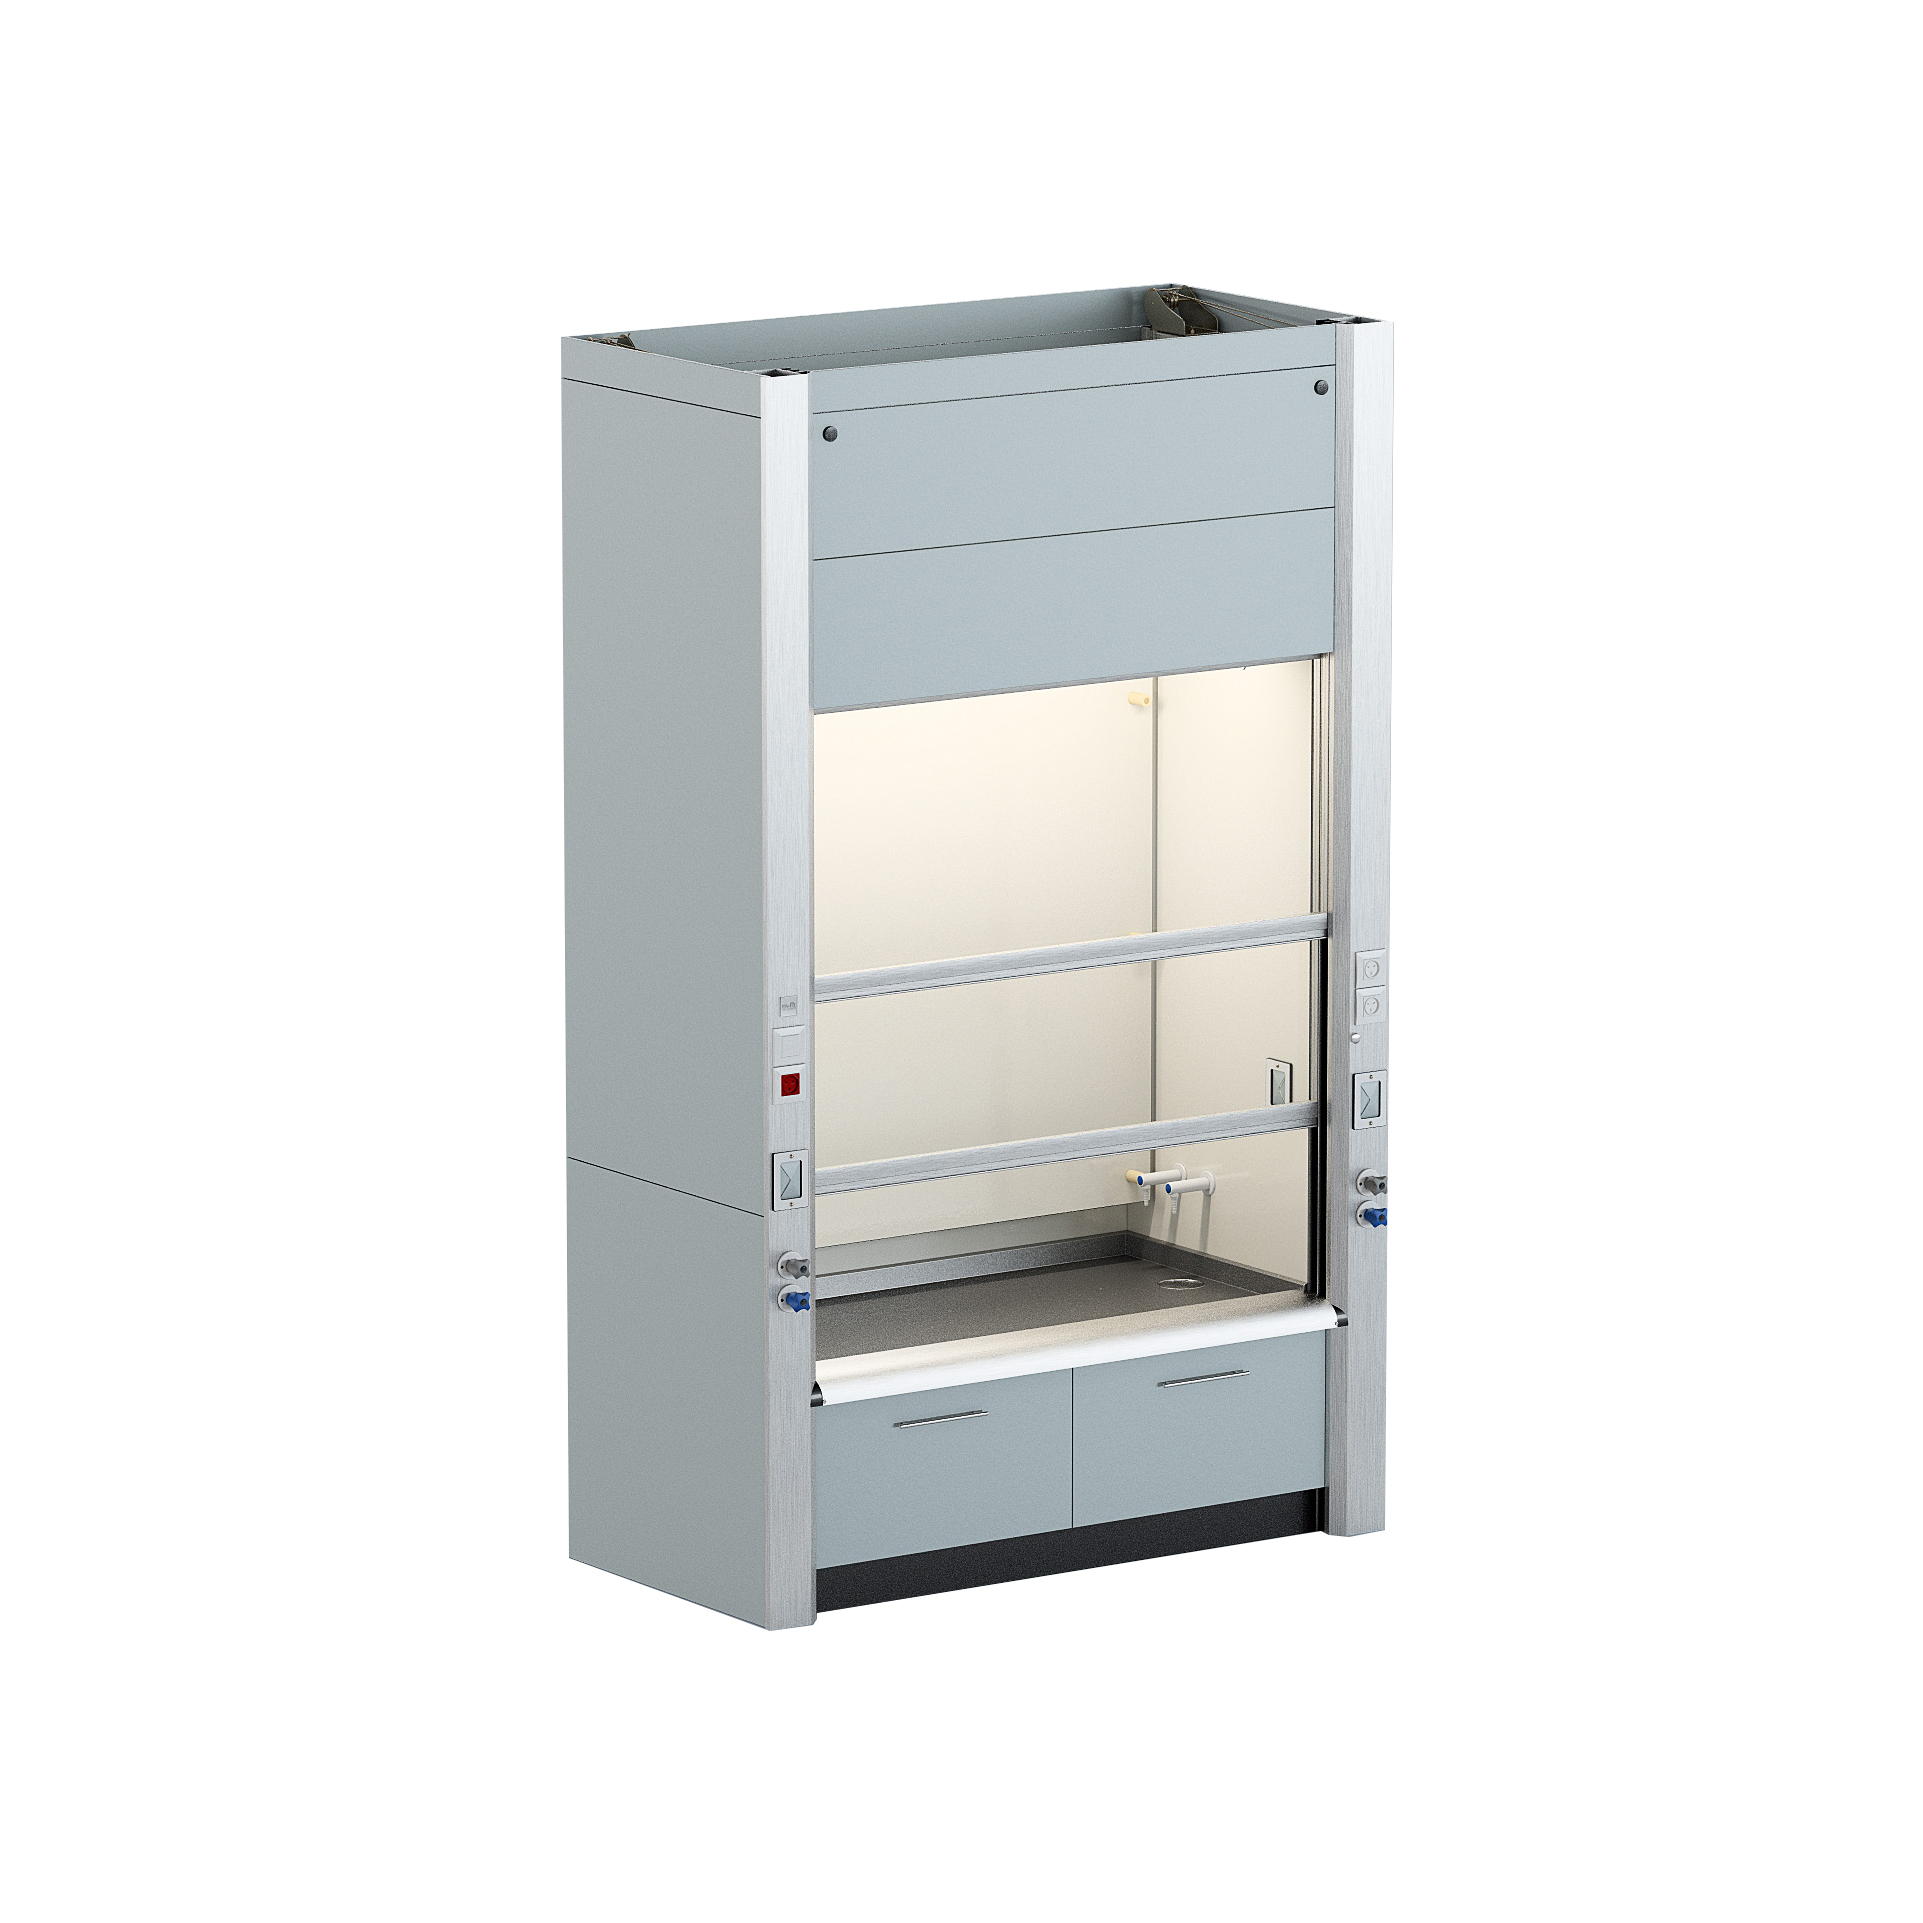 Fume hood with a Low surface